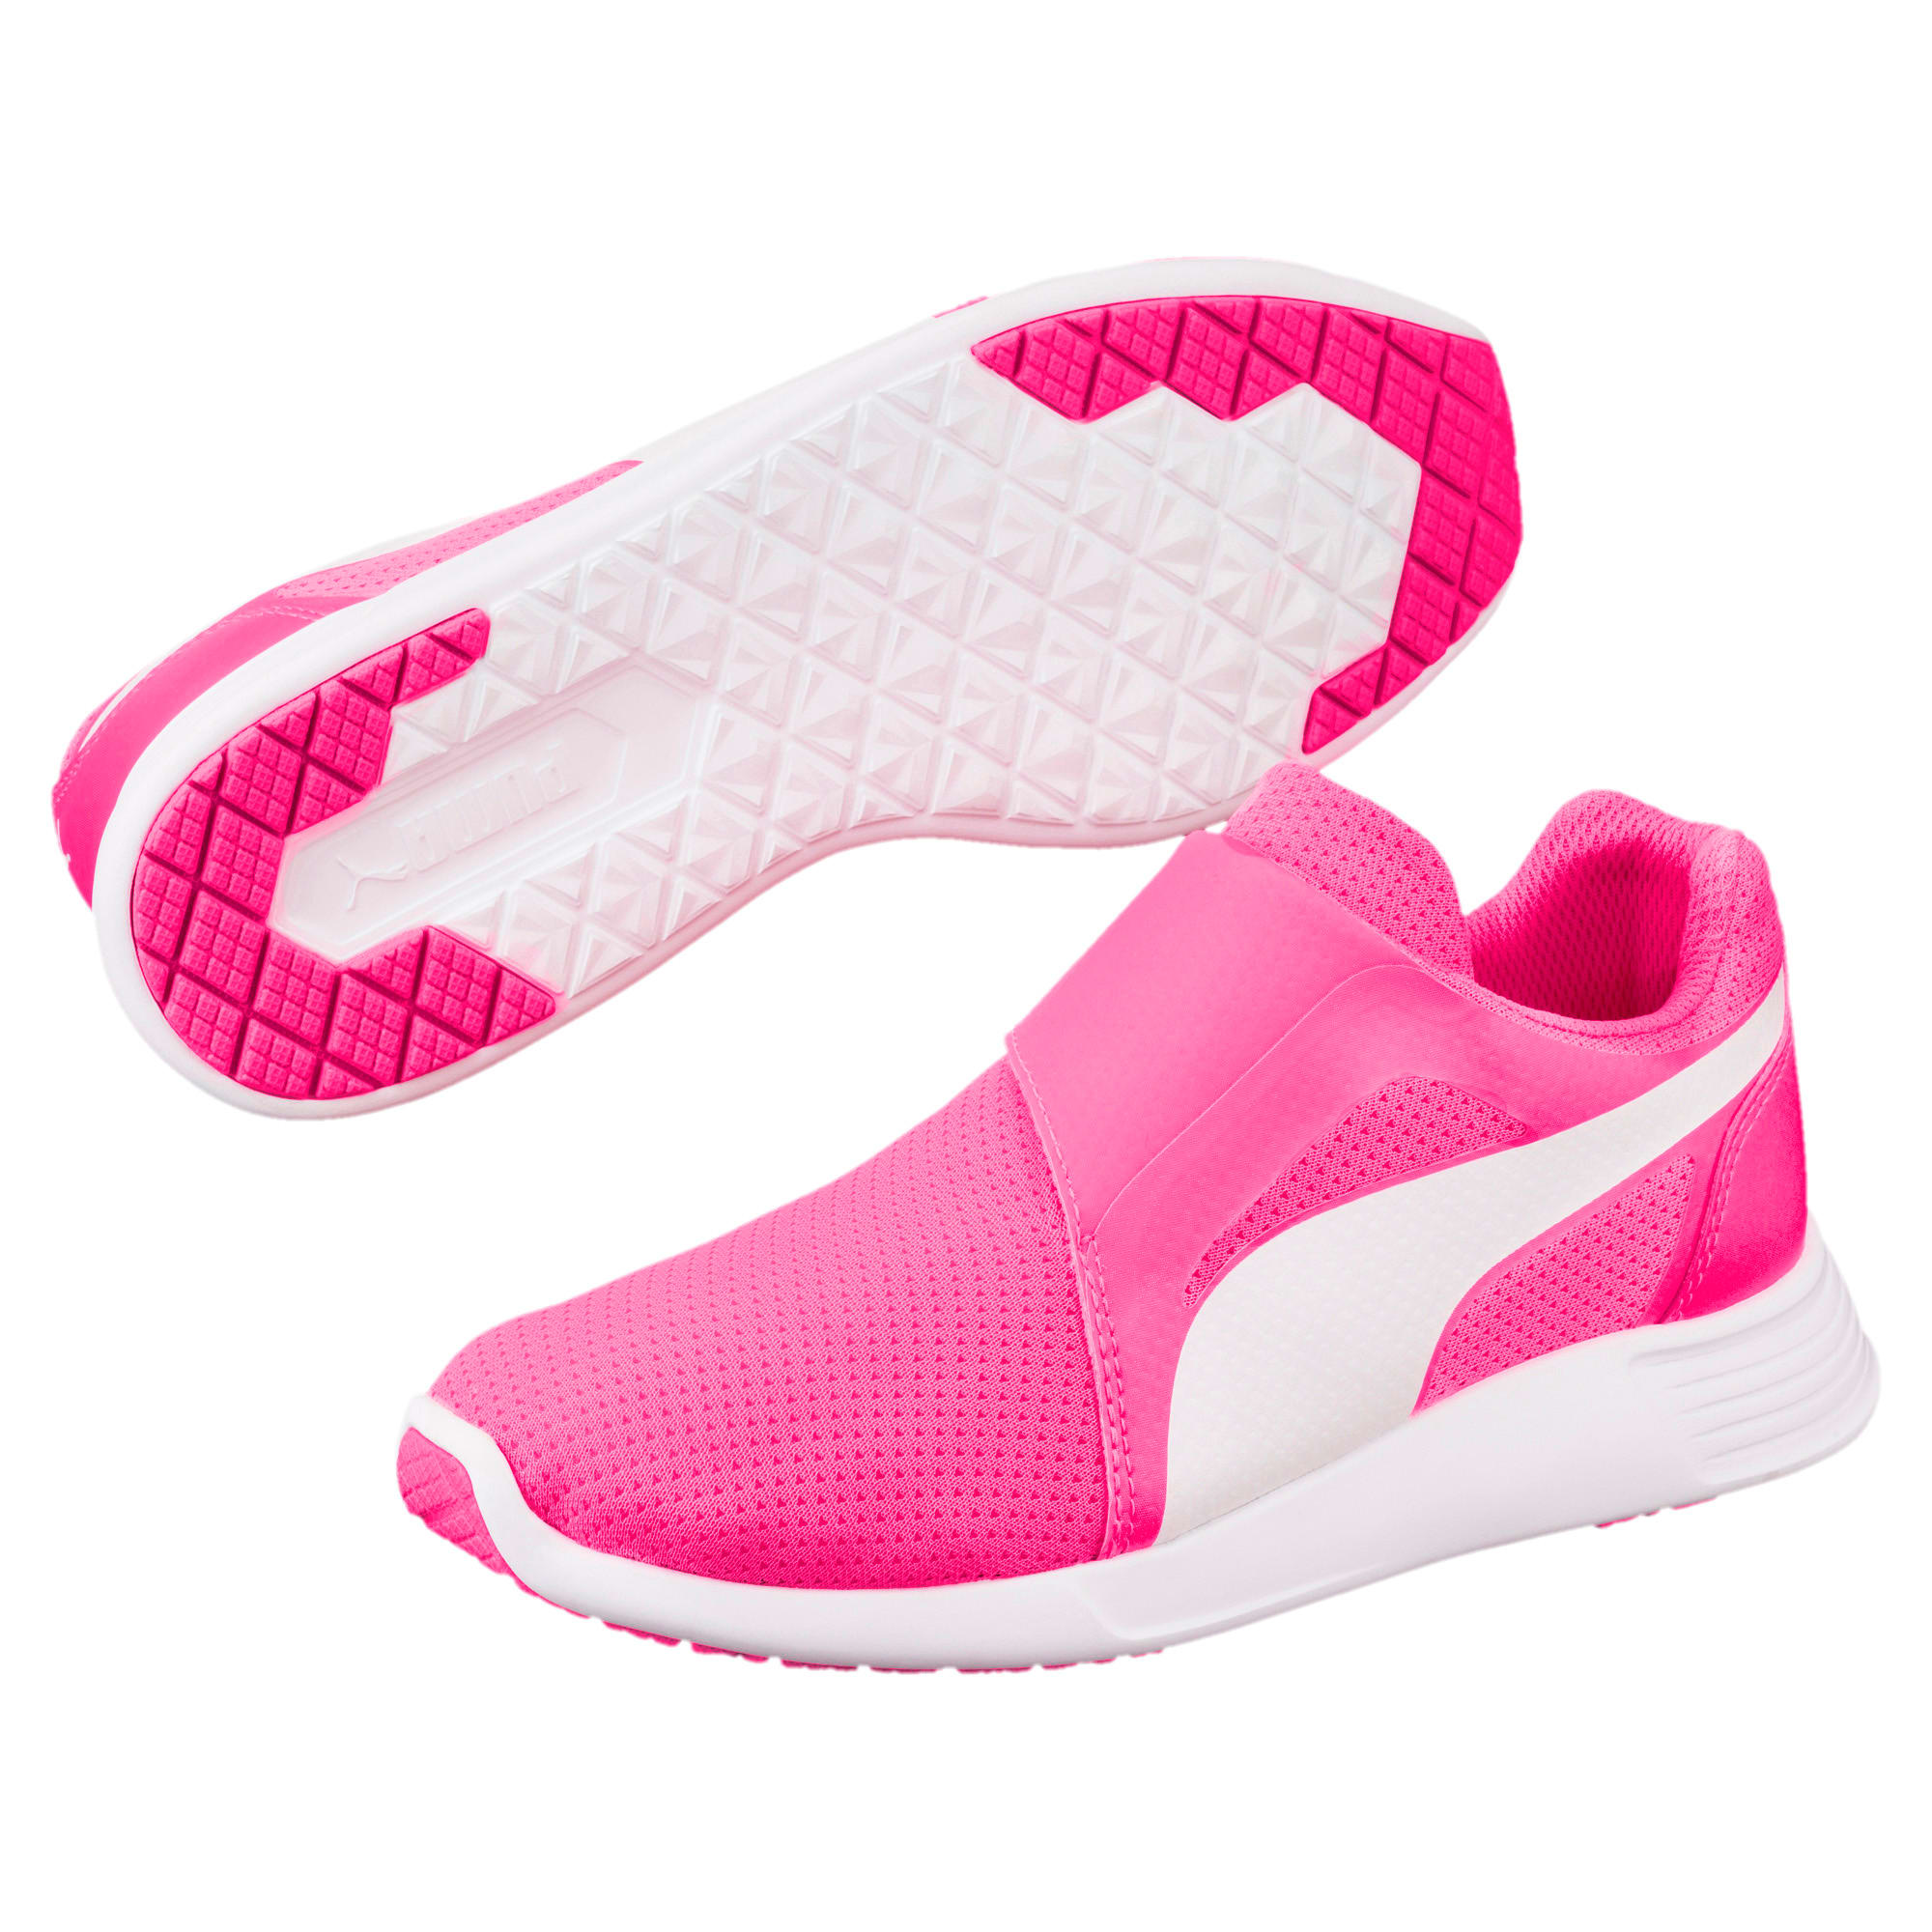 Thumbnail 2 of ST Trainer Evo AC Kids' Trainers, KNOCKOUT PINK-Puma White, medium-IND